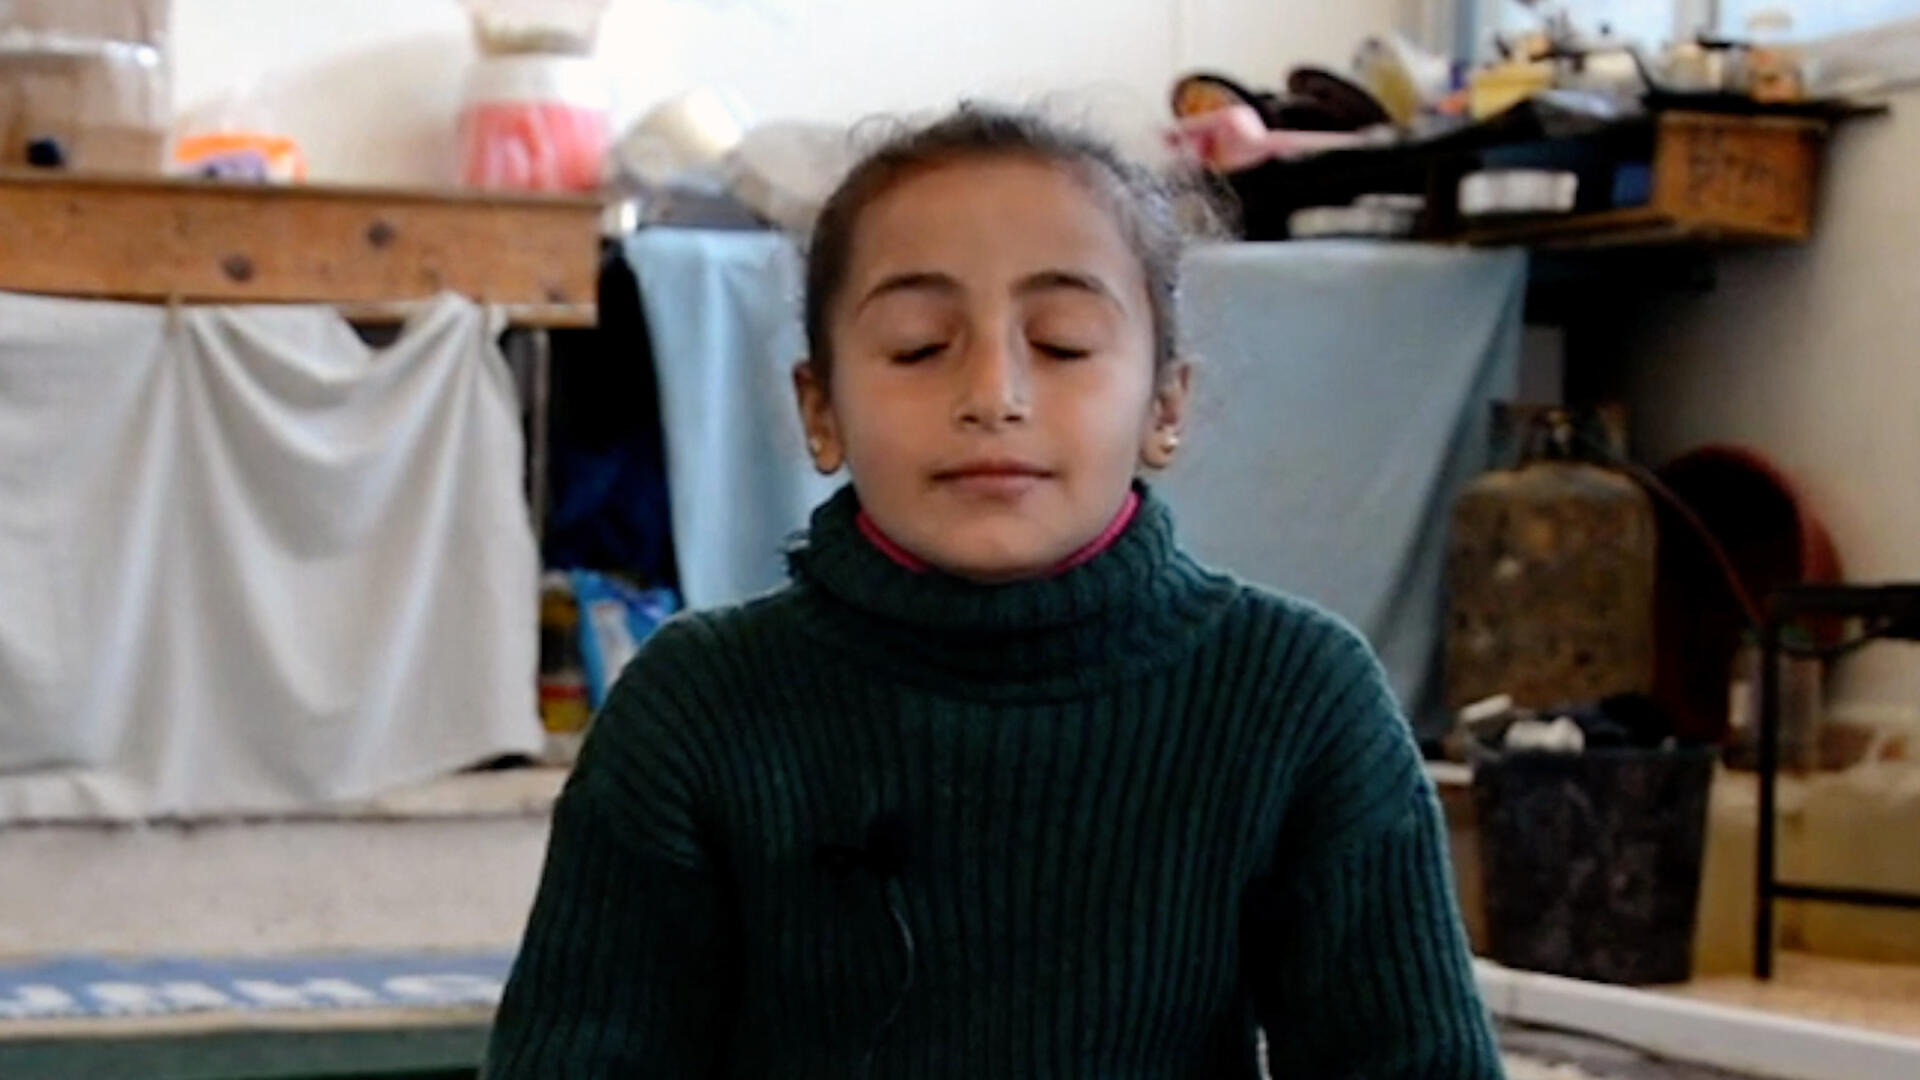 Eyes closed, Reem an 8-year-old girl in Syria, takes a deep breath while practicing mindfulness.